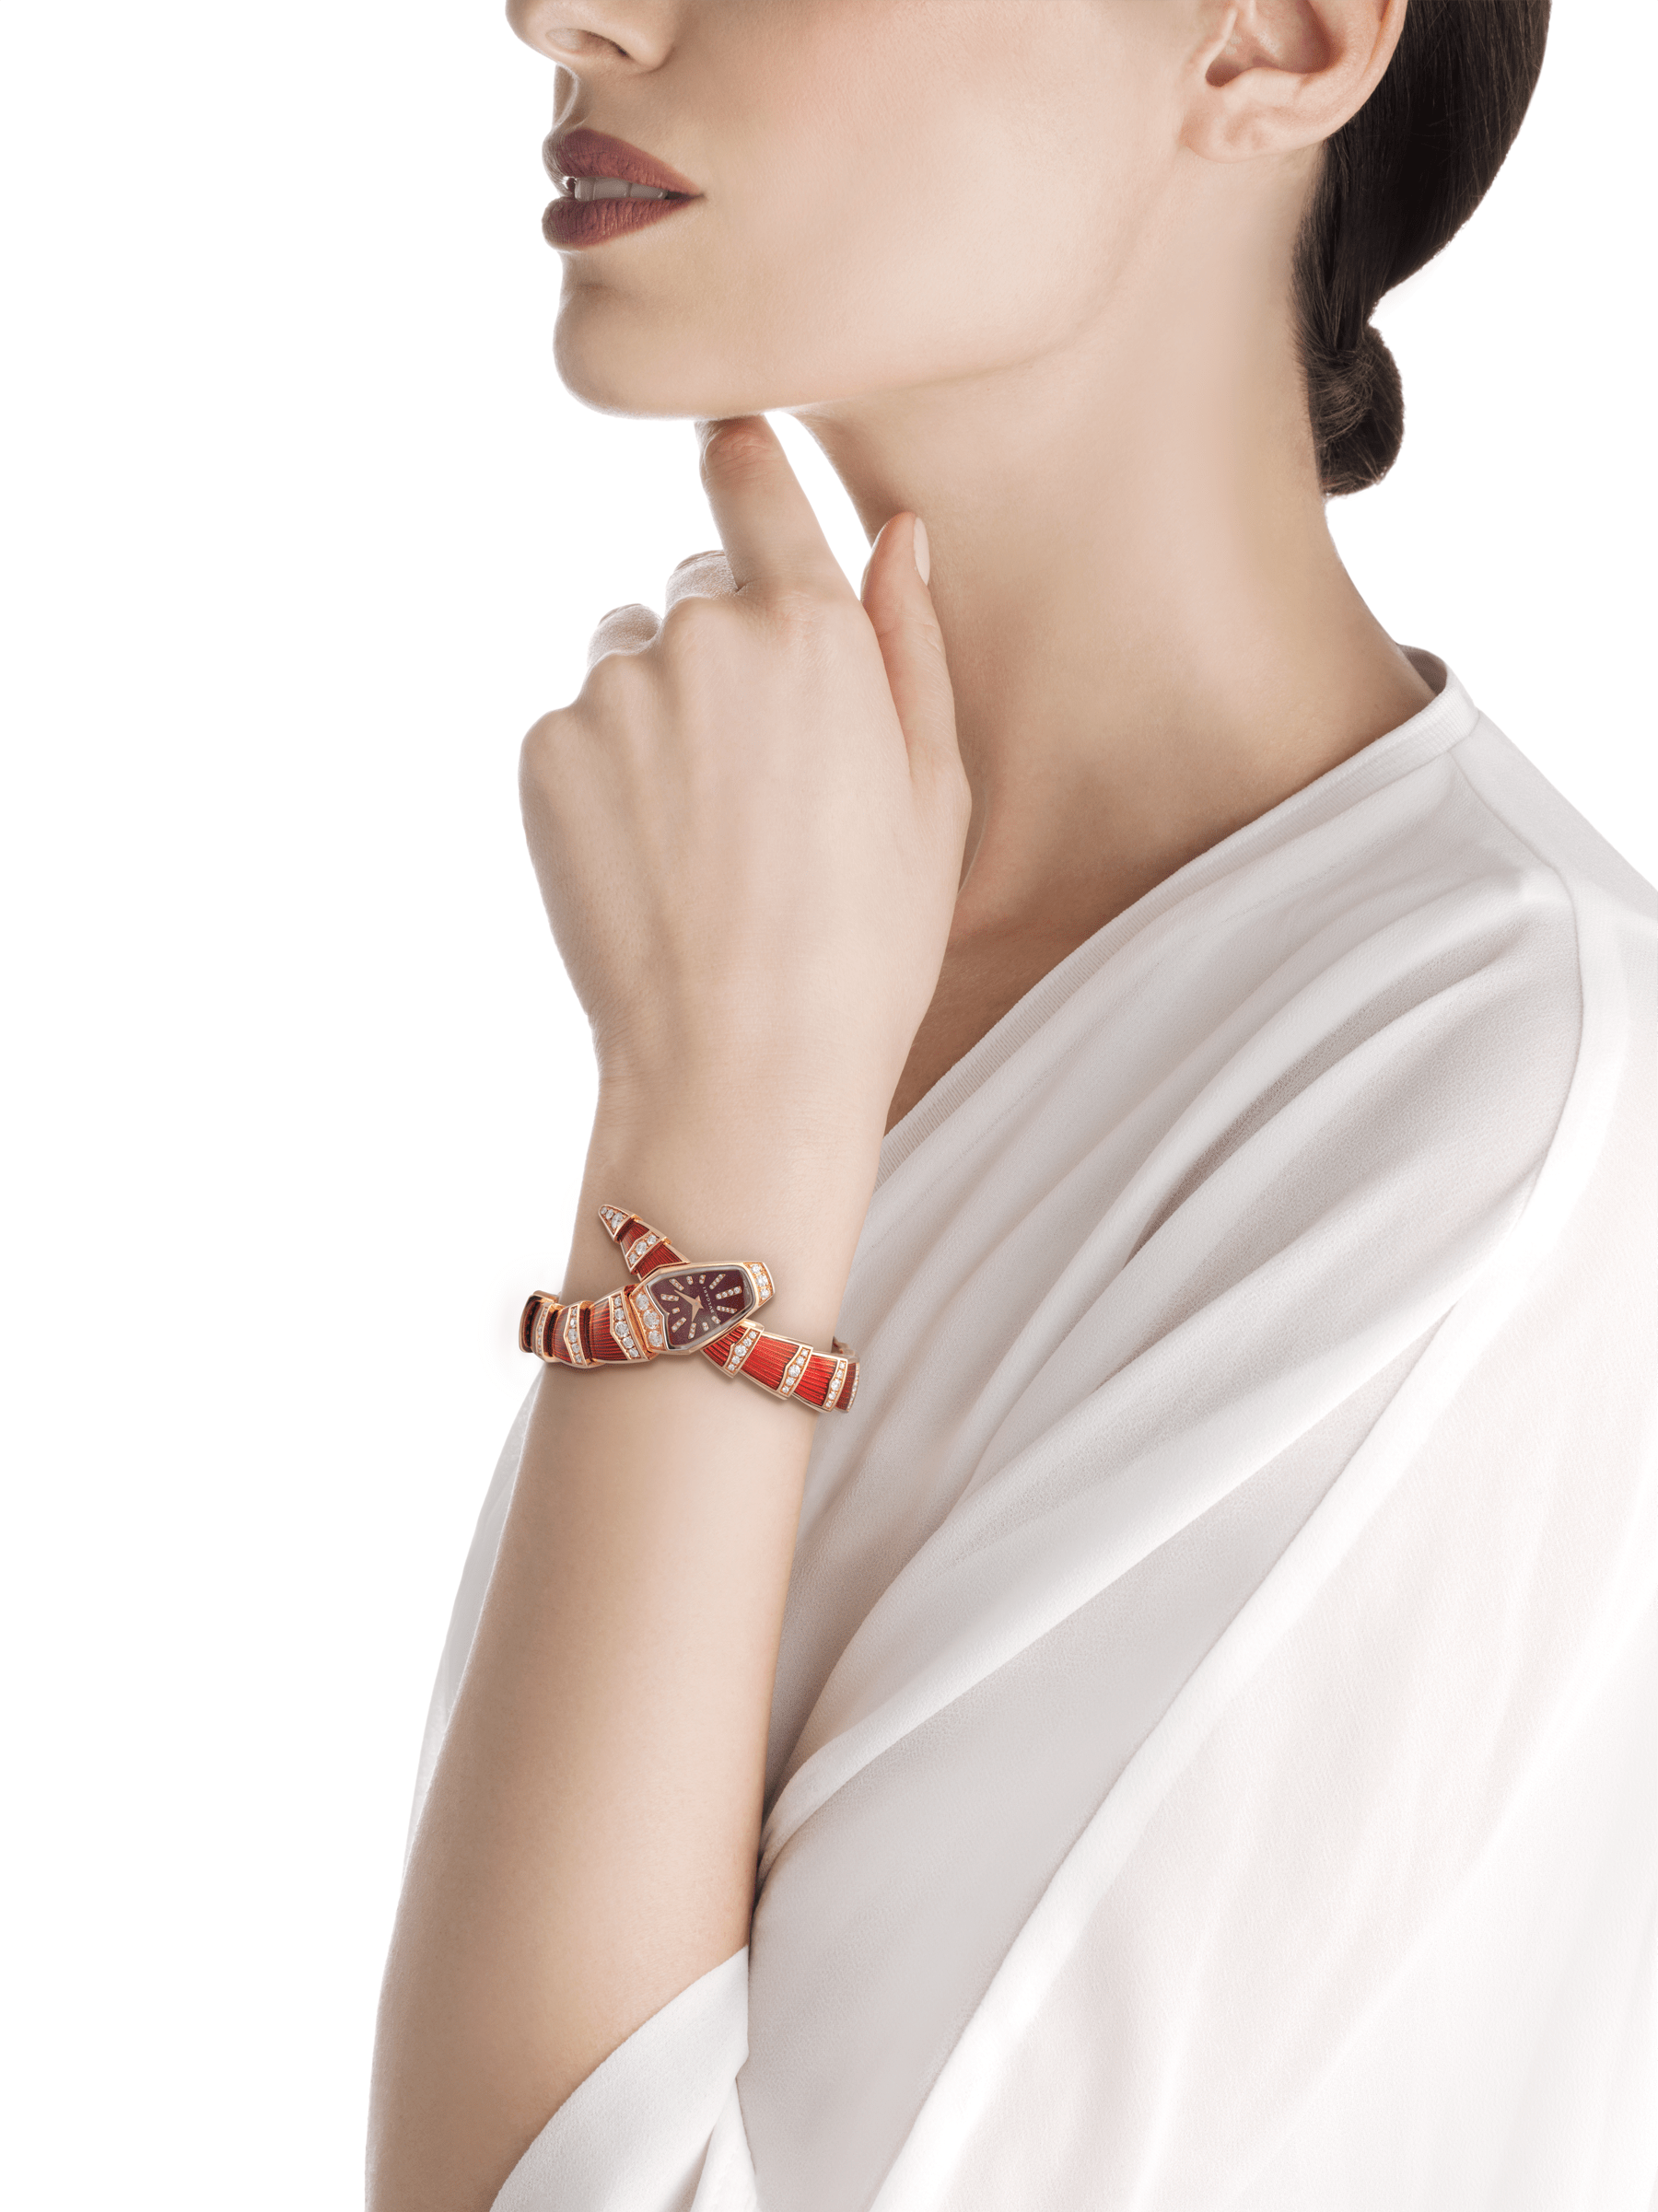 Quartz movement. 26 mm 18 kt pink gold curved case set with brilliant-cut diamonds. Red lacquered dial set with brilliant-cut diamond indexes. Single-spiral 18 kt pink gold bracelet set with brilliant-cut diamonds and coated with red lacquer. 102345 image 2